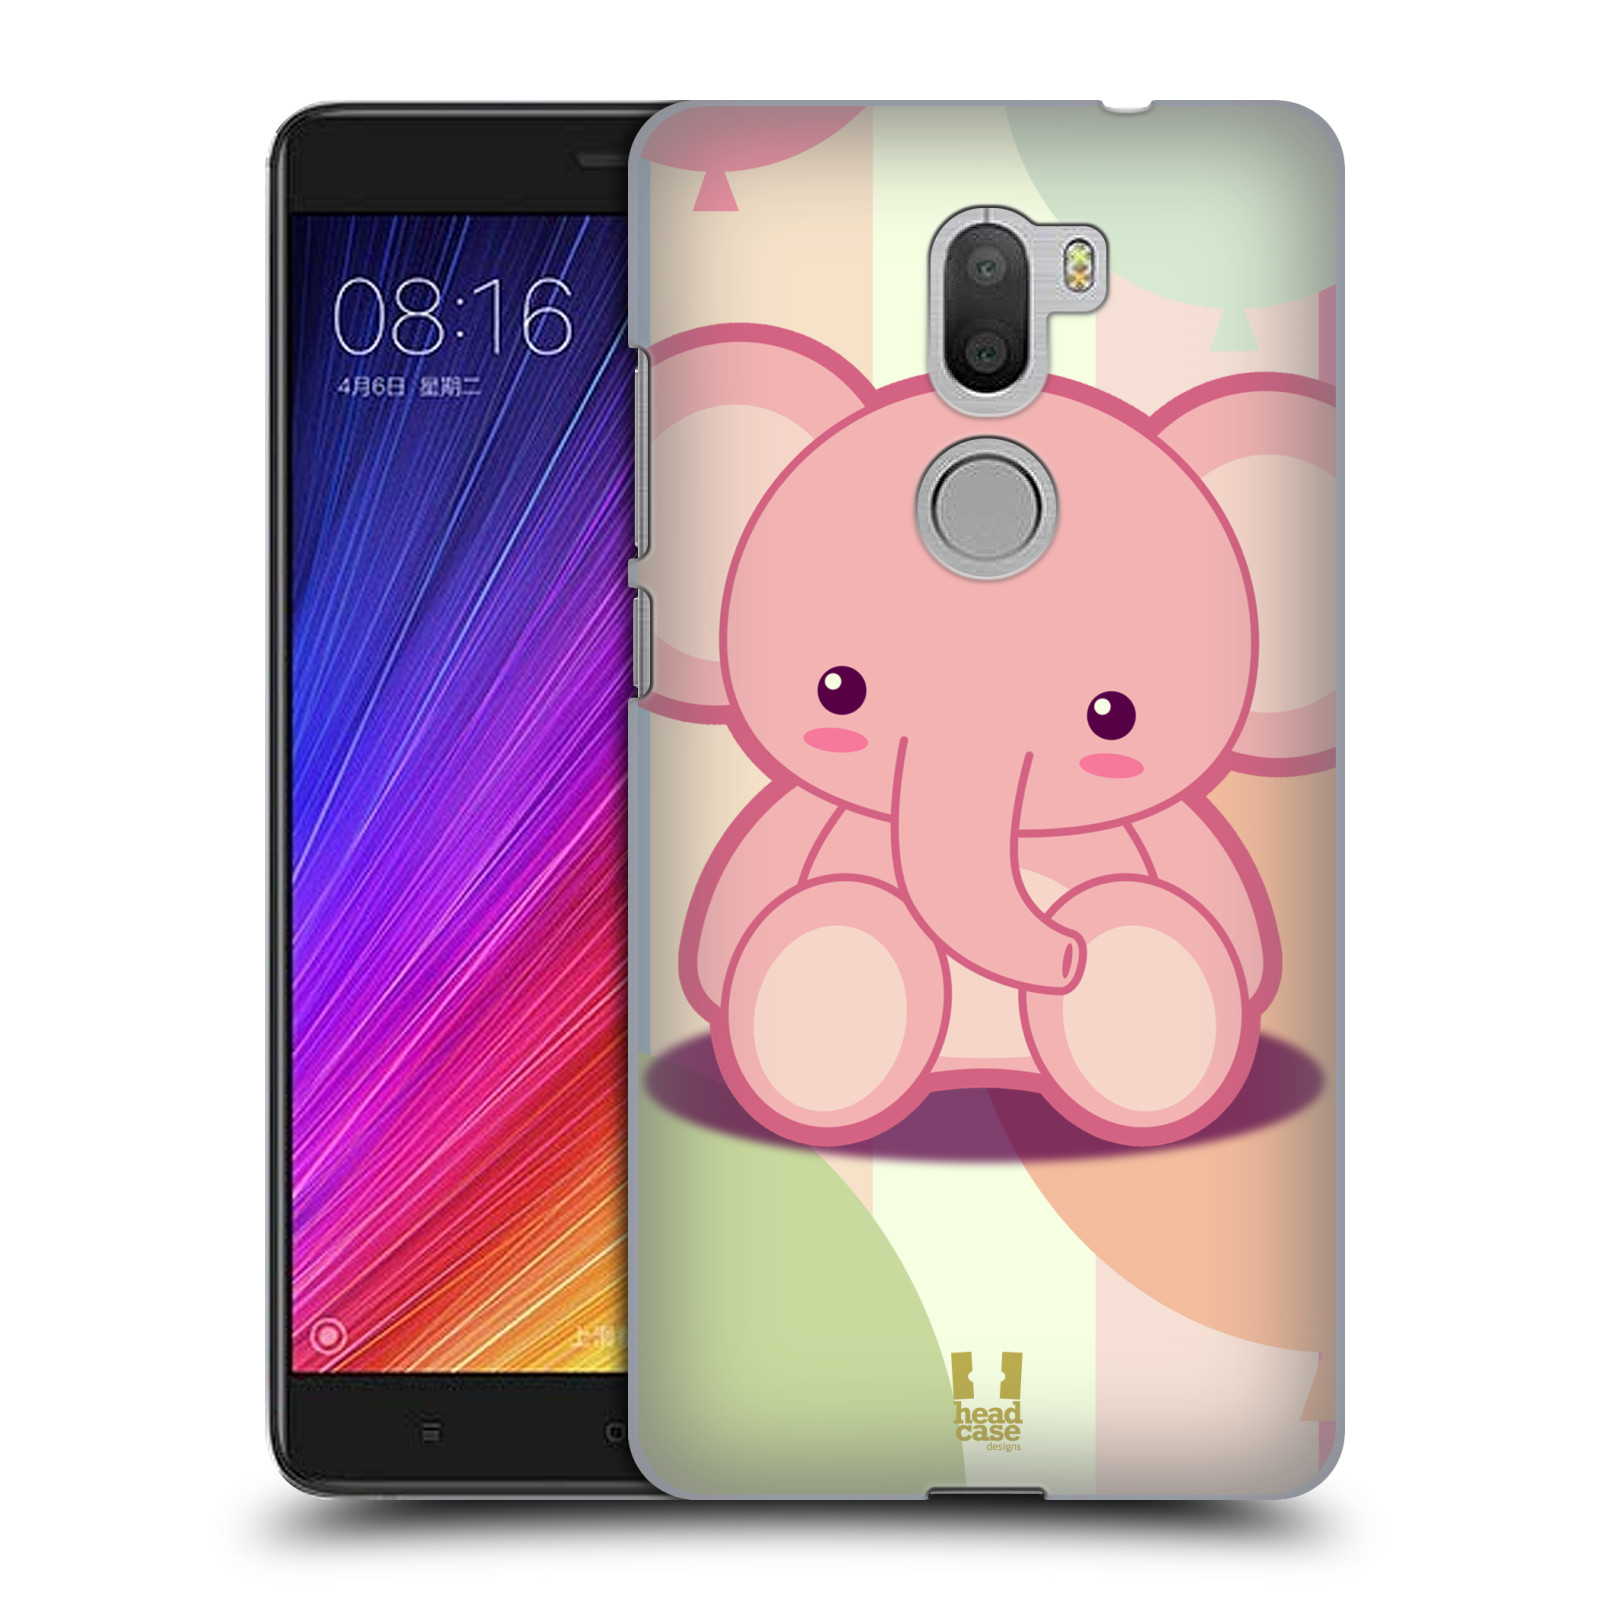 HEAD-CASE-DESIGNS-BABY-ELEPHANTS-HARD-BACK-CASE-FOR-XIAOMI-Mi-5s-PLUS